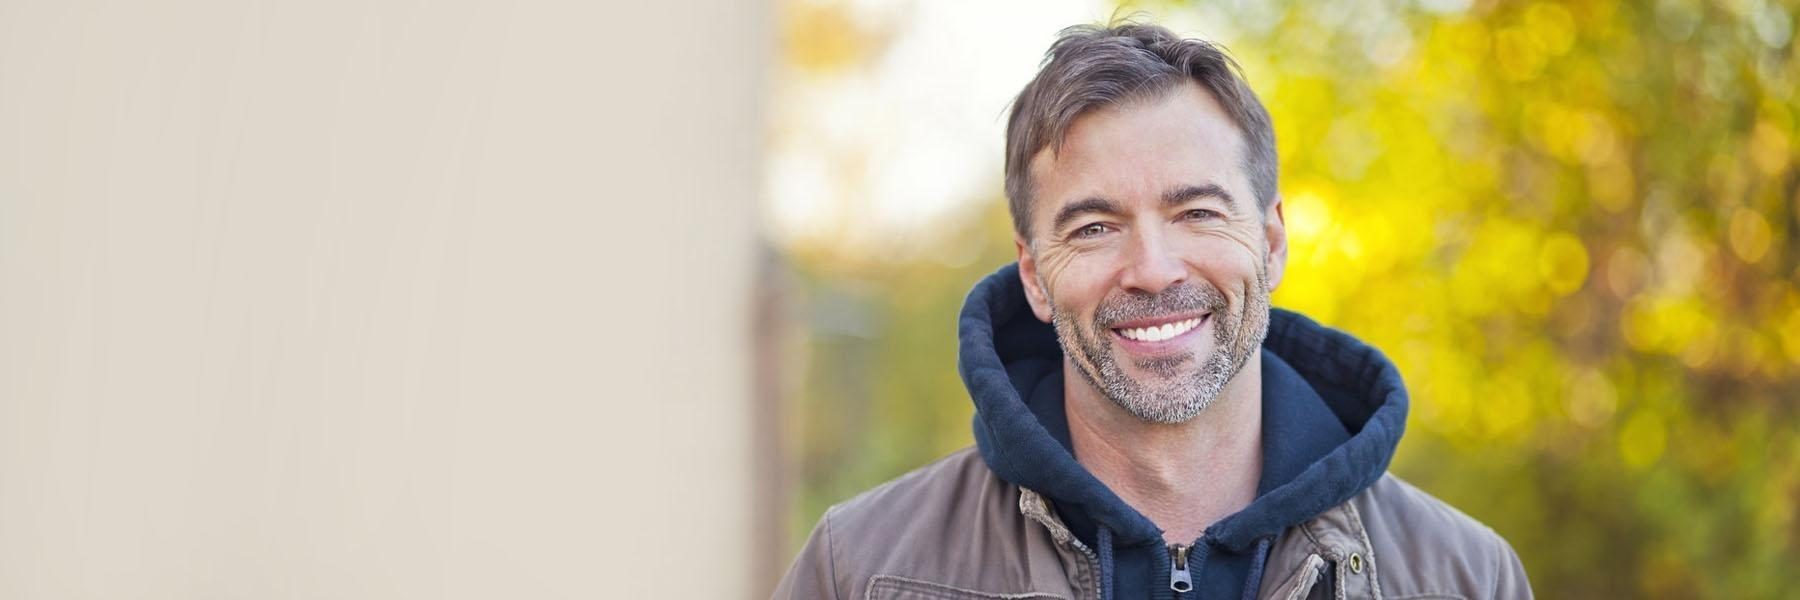 middle aged man smiling | madera ca dentist